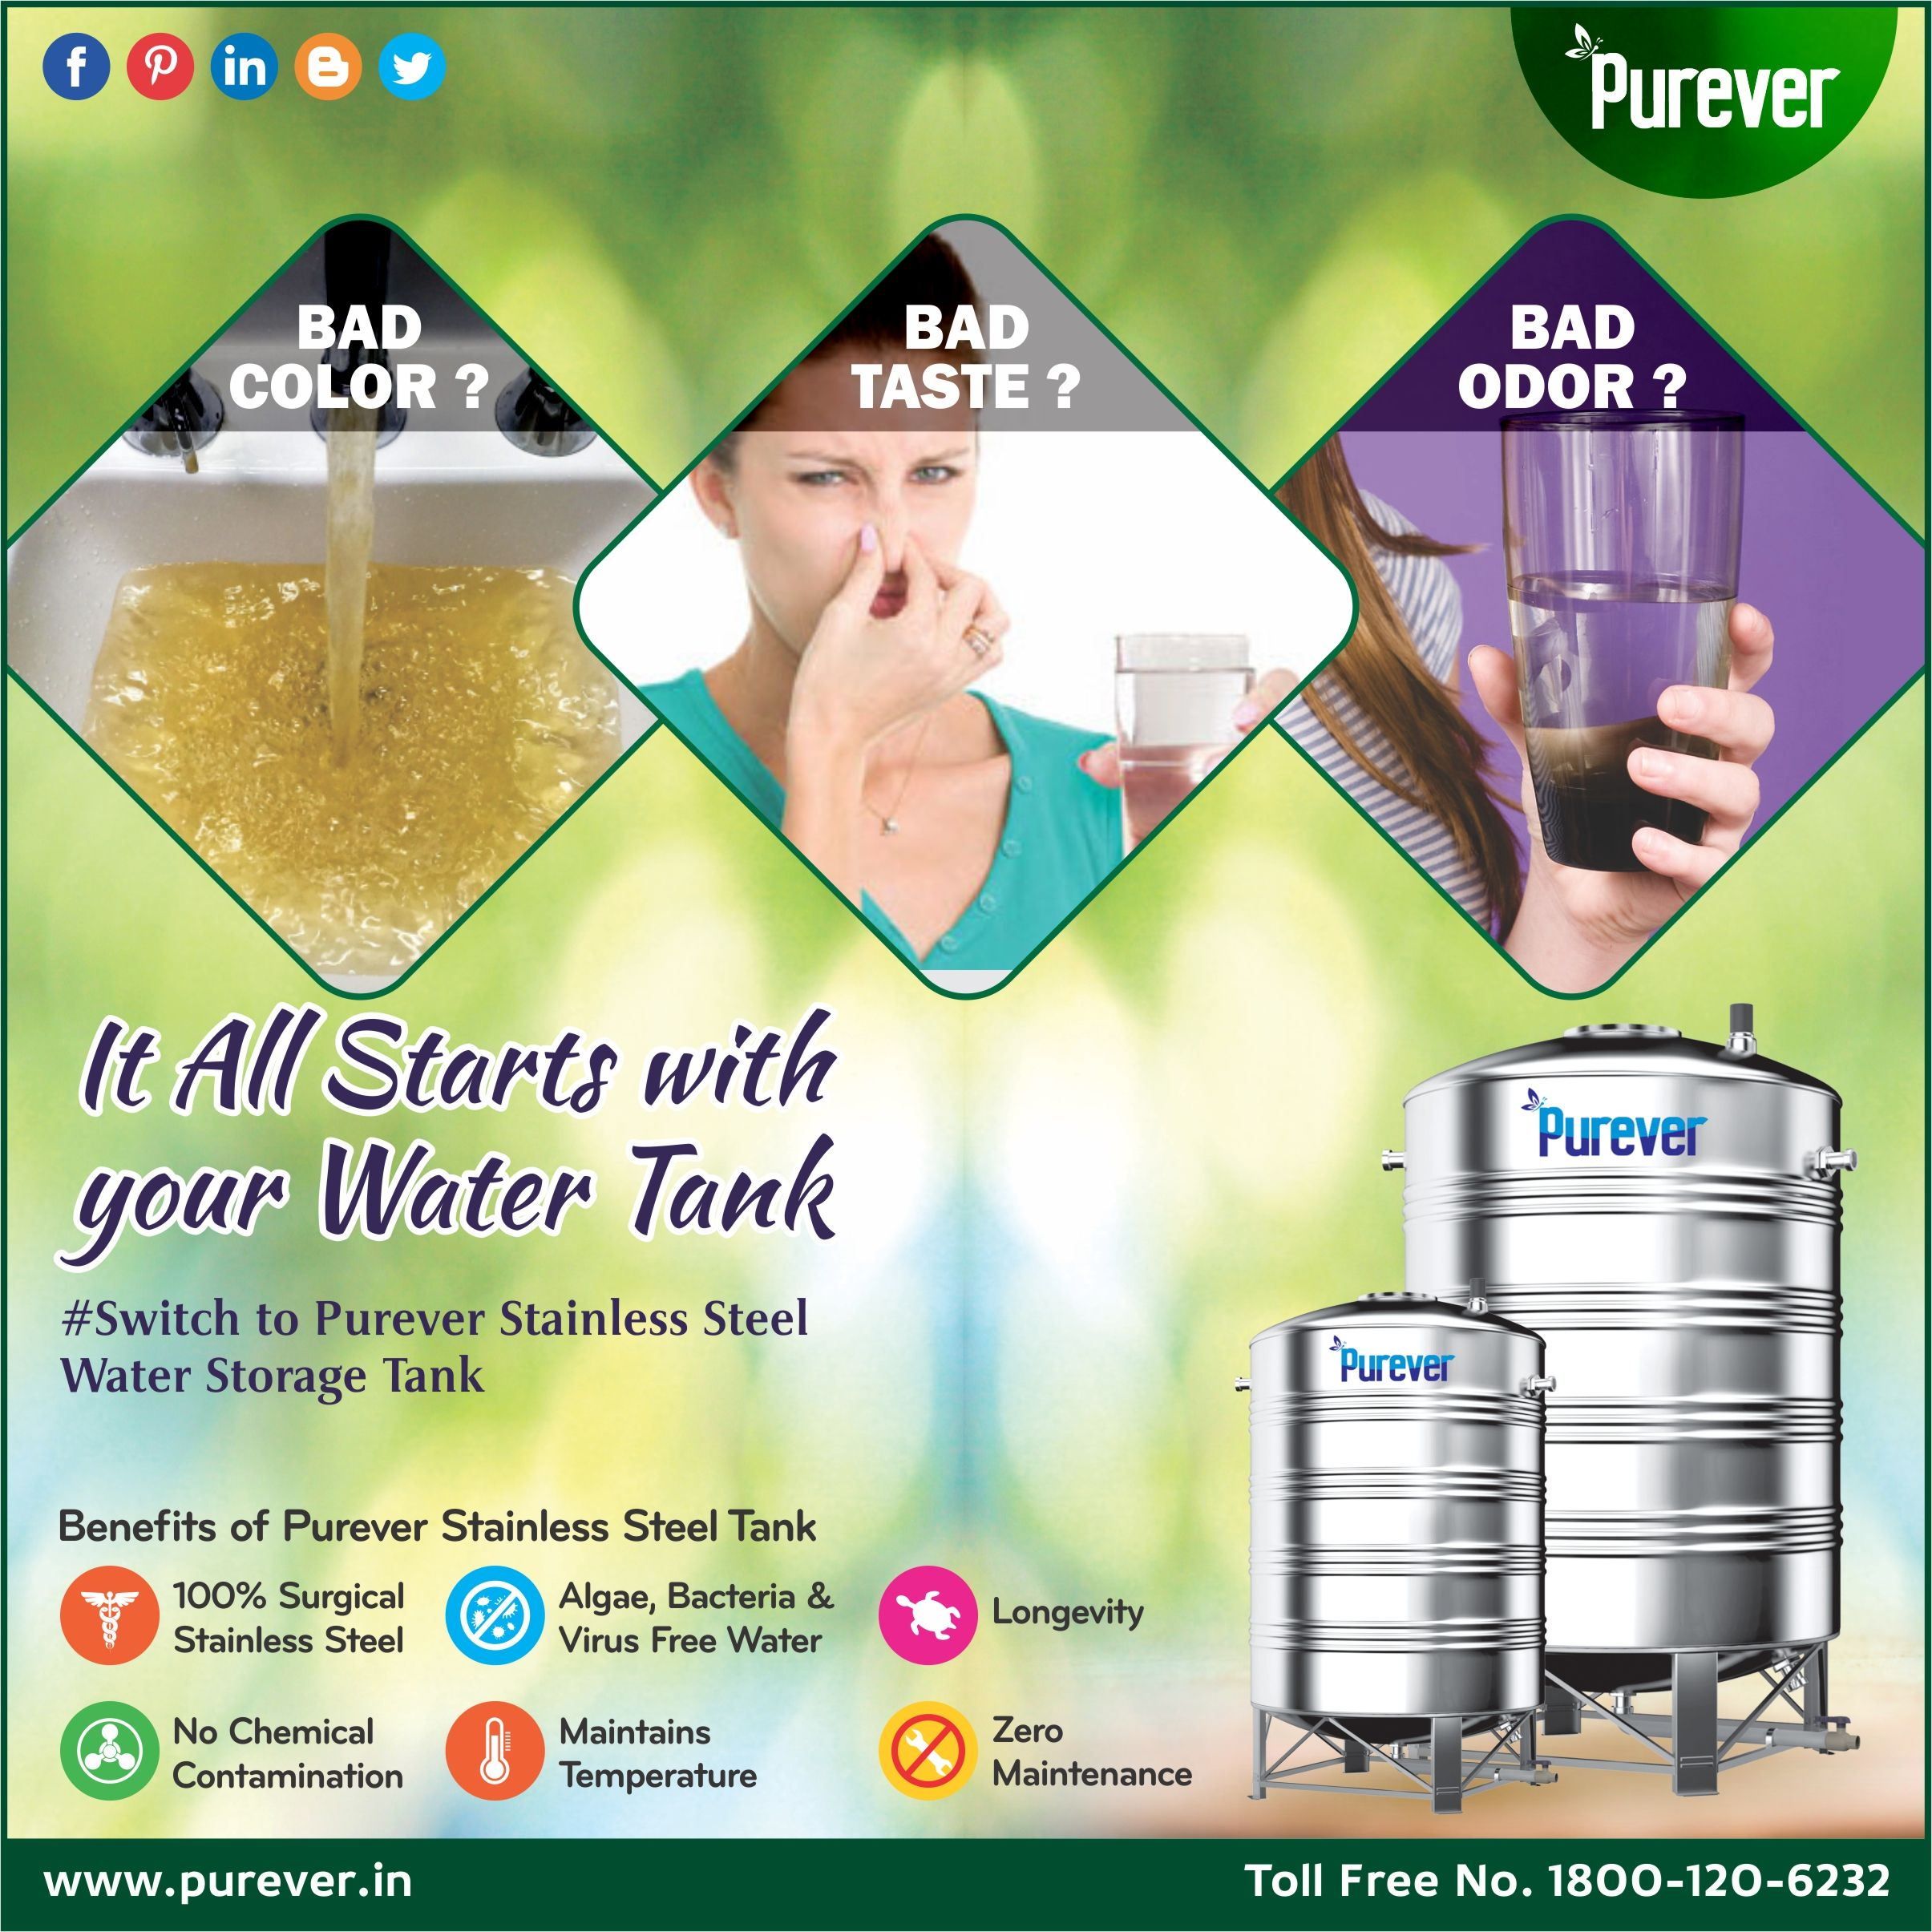 Bad Color Of Water Bad Taste Of Water Bad Oror Of Water It All Starts With Your Water Tank Purever Provid Water Tank Steel Water Tanks Water Storage Tanks